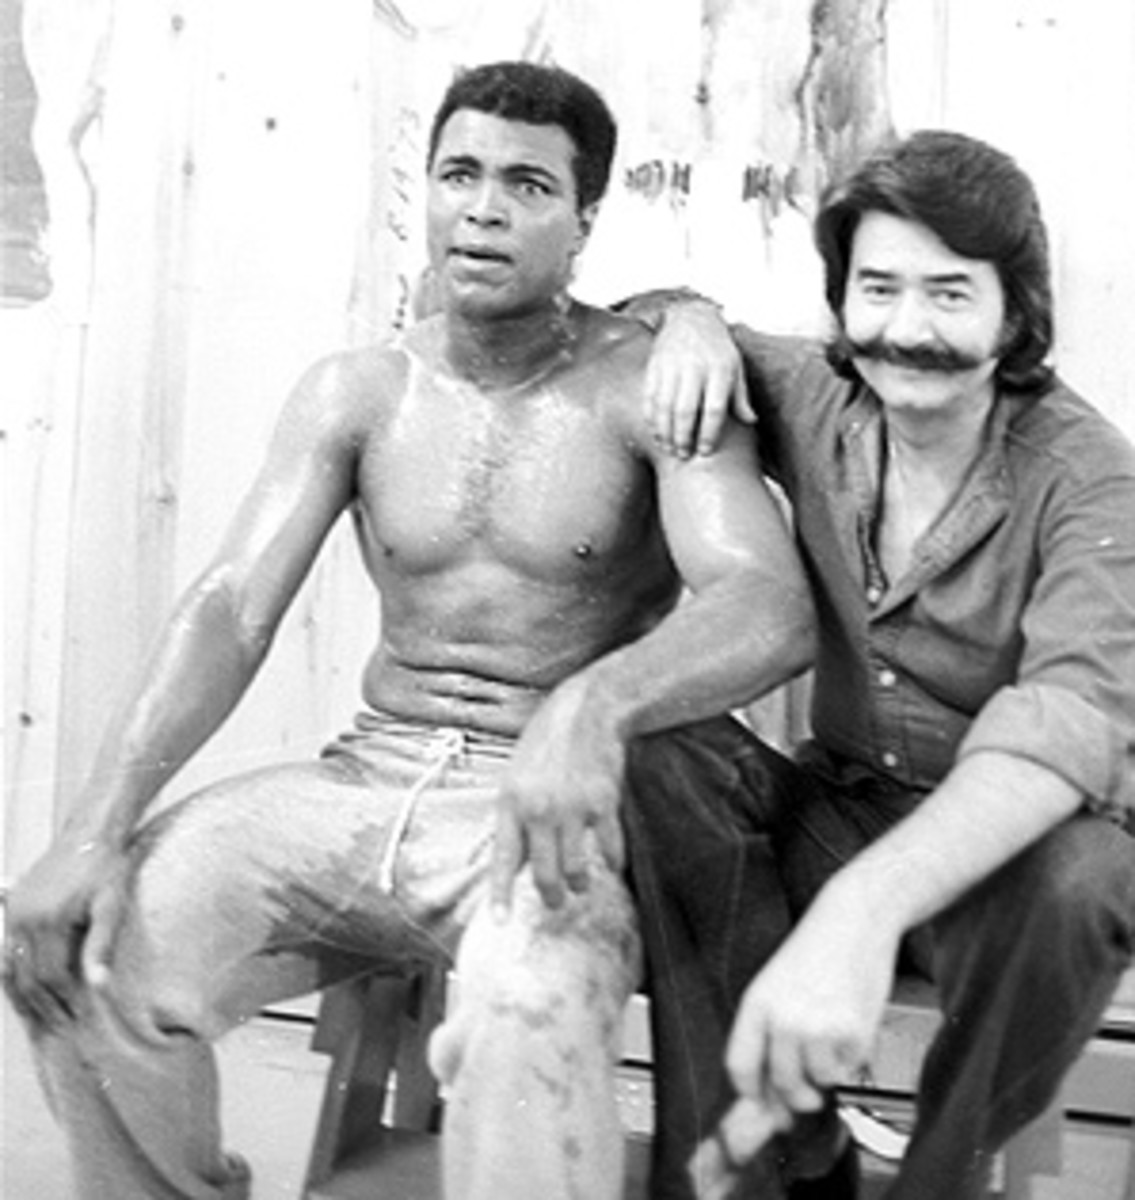 Celebrity sports artist Leroy Neiman is pictured with Muhammad Ali at his training camp cabin. Neiman passed away on June 20.